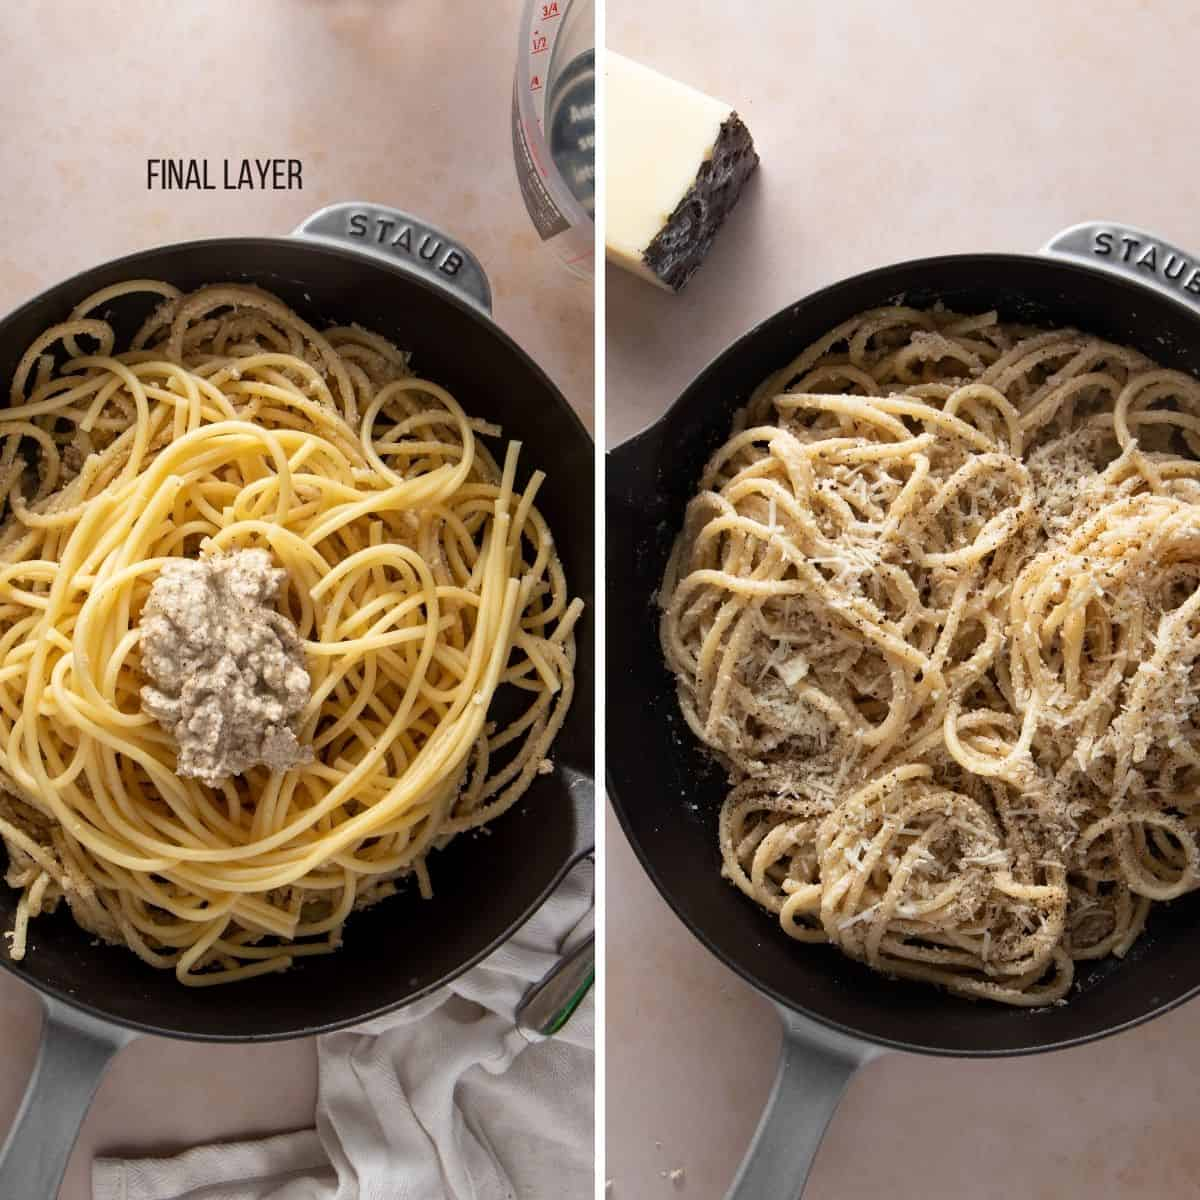 Final step of layering show fully mixed cacio e pepe (before and after)